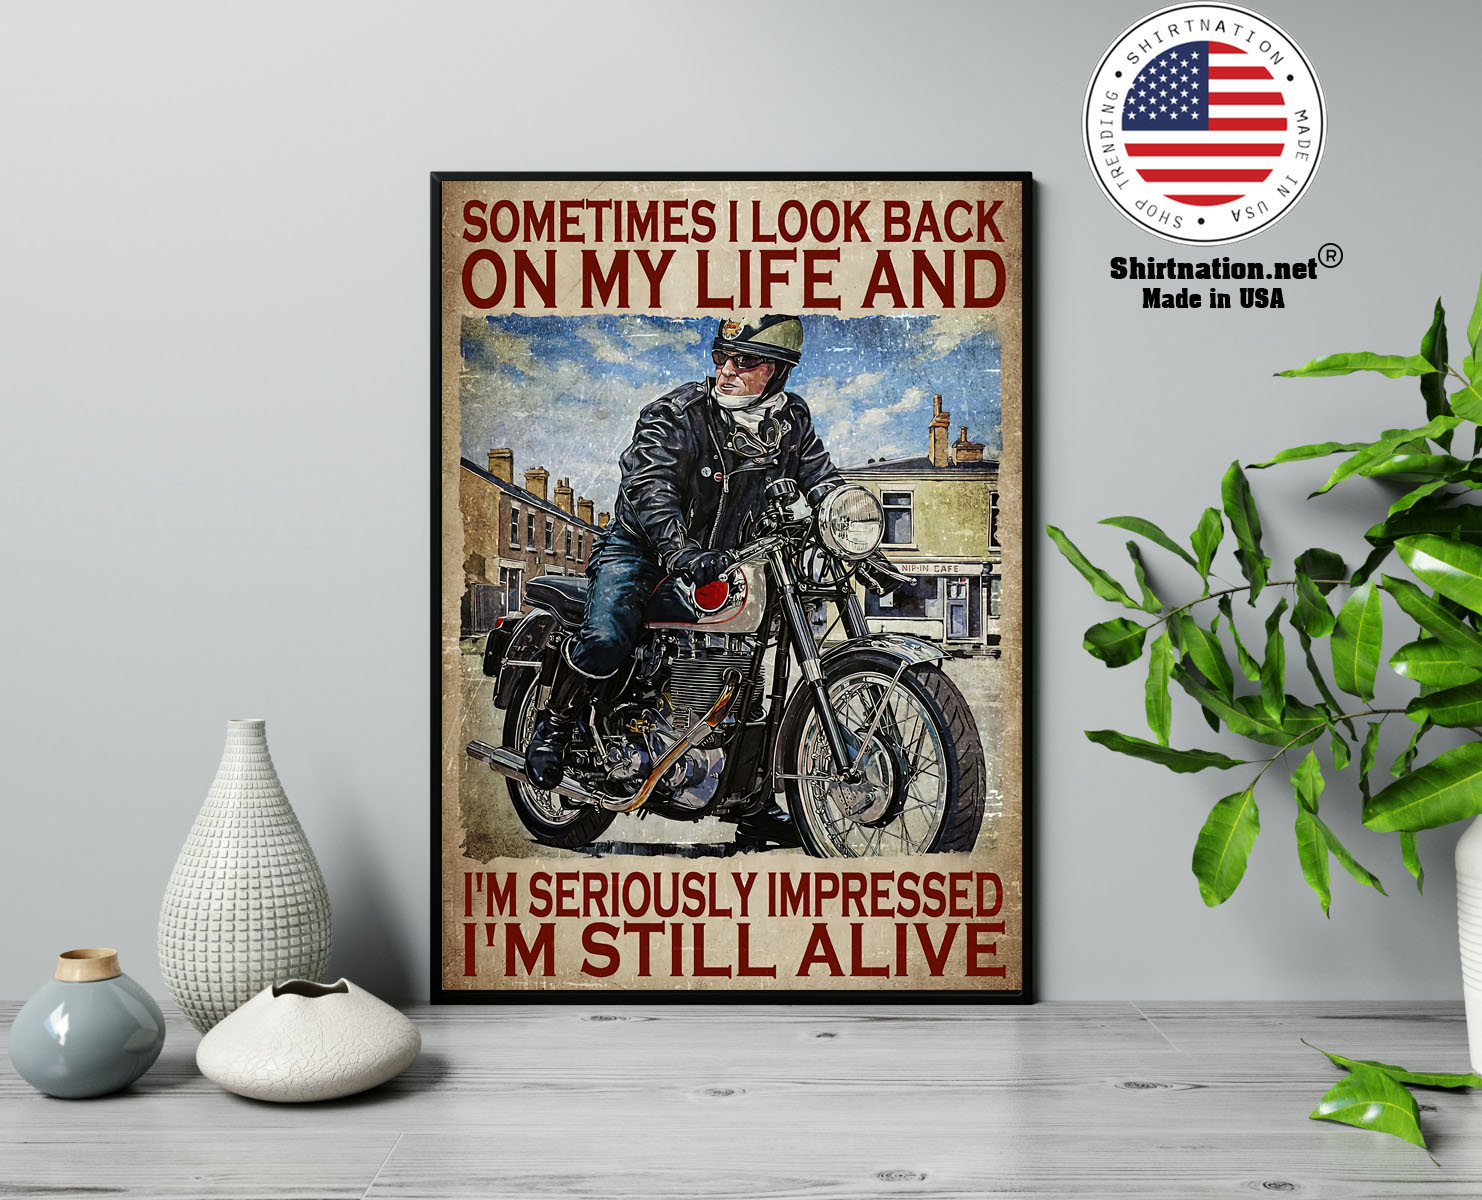 Motorcycles man Sometimes I look back on my life and Im seriously impressed Im still alive poster 13